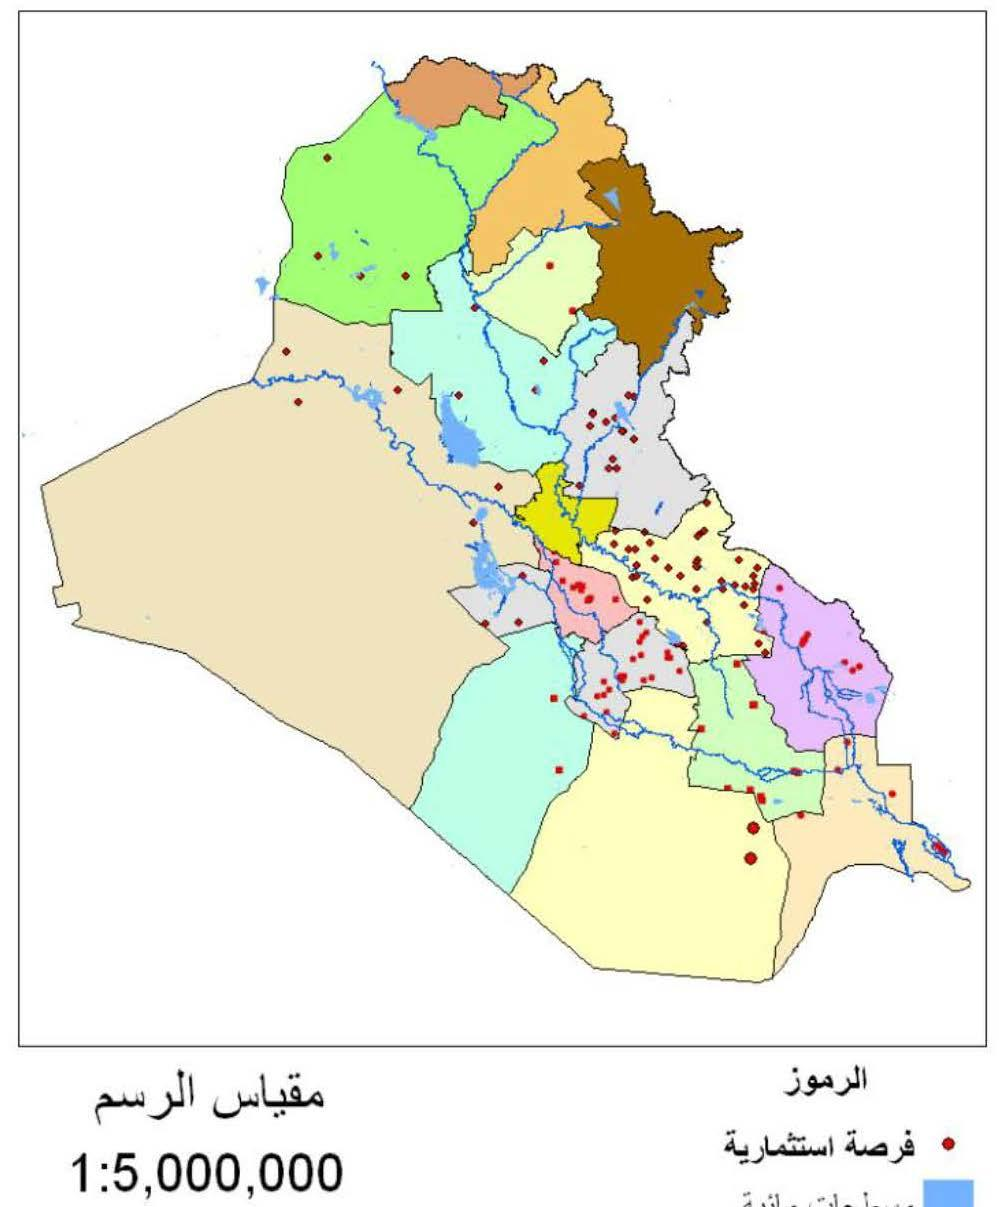 Iraq Investment Map 2016 167 Total Area offered for Agricultural